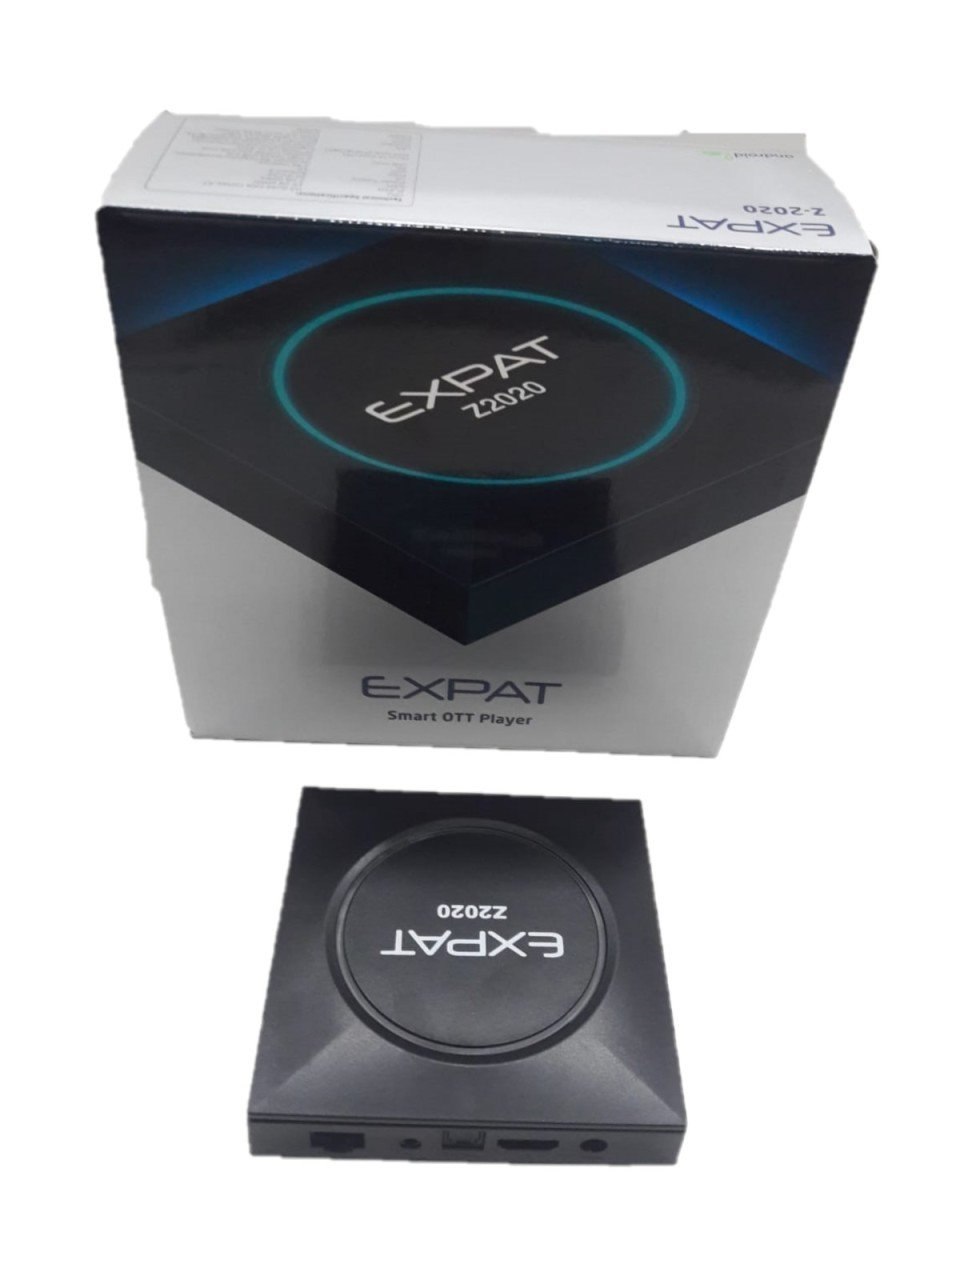 TV BOX EXPAT Z-2020 RAM 2GB DD3 ANDROID 9.0 TV BOX EXPAT Z-2020  Операционна система: Android 9.0